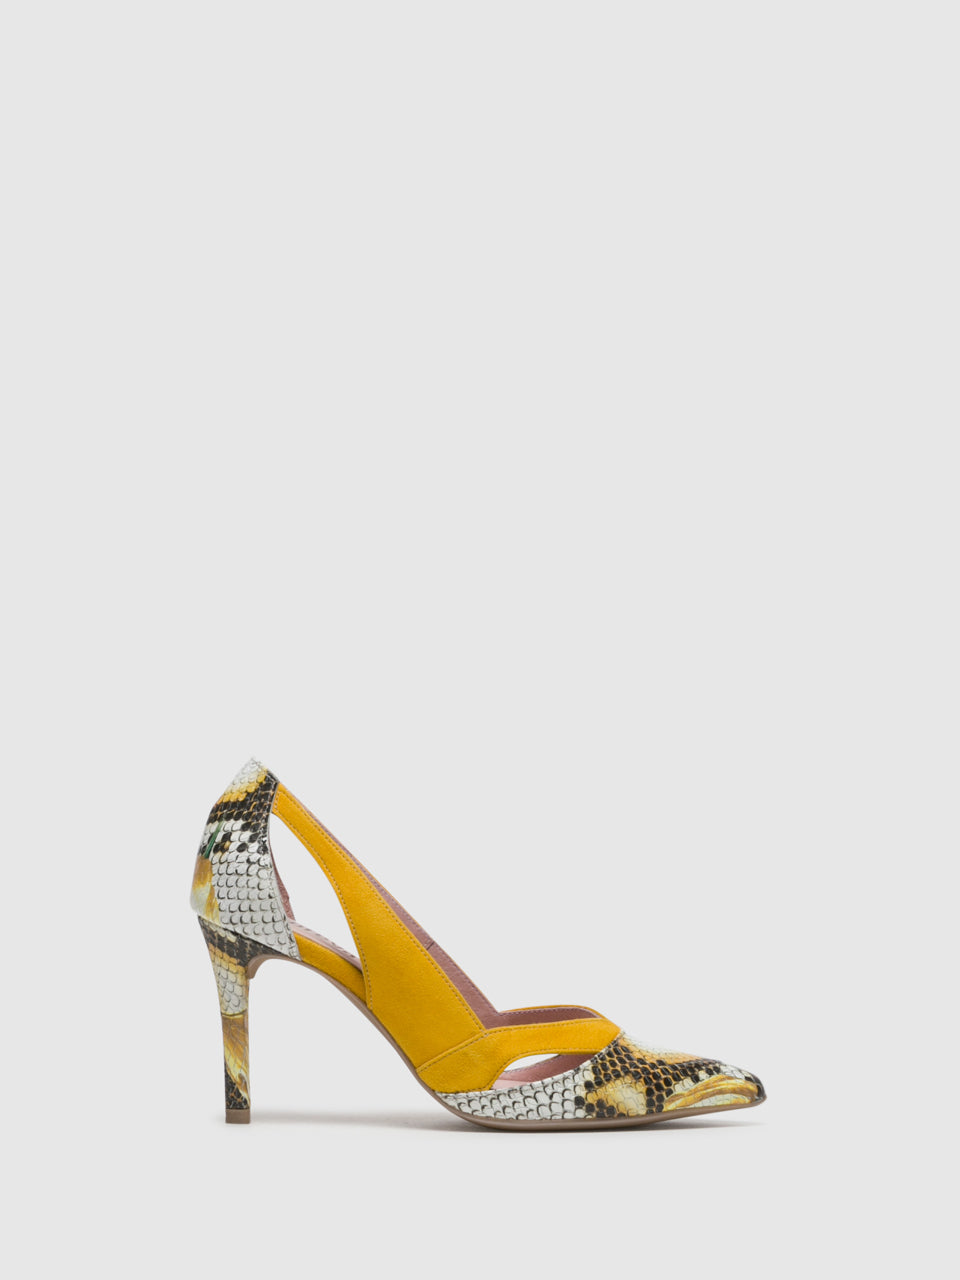 Foreva Zapatos de Tacón Stilettos en color Amarillo